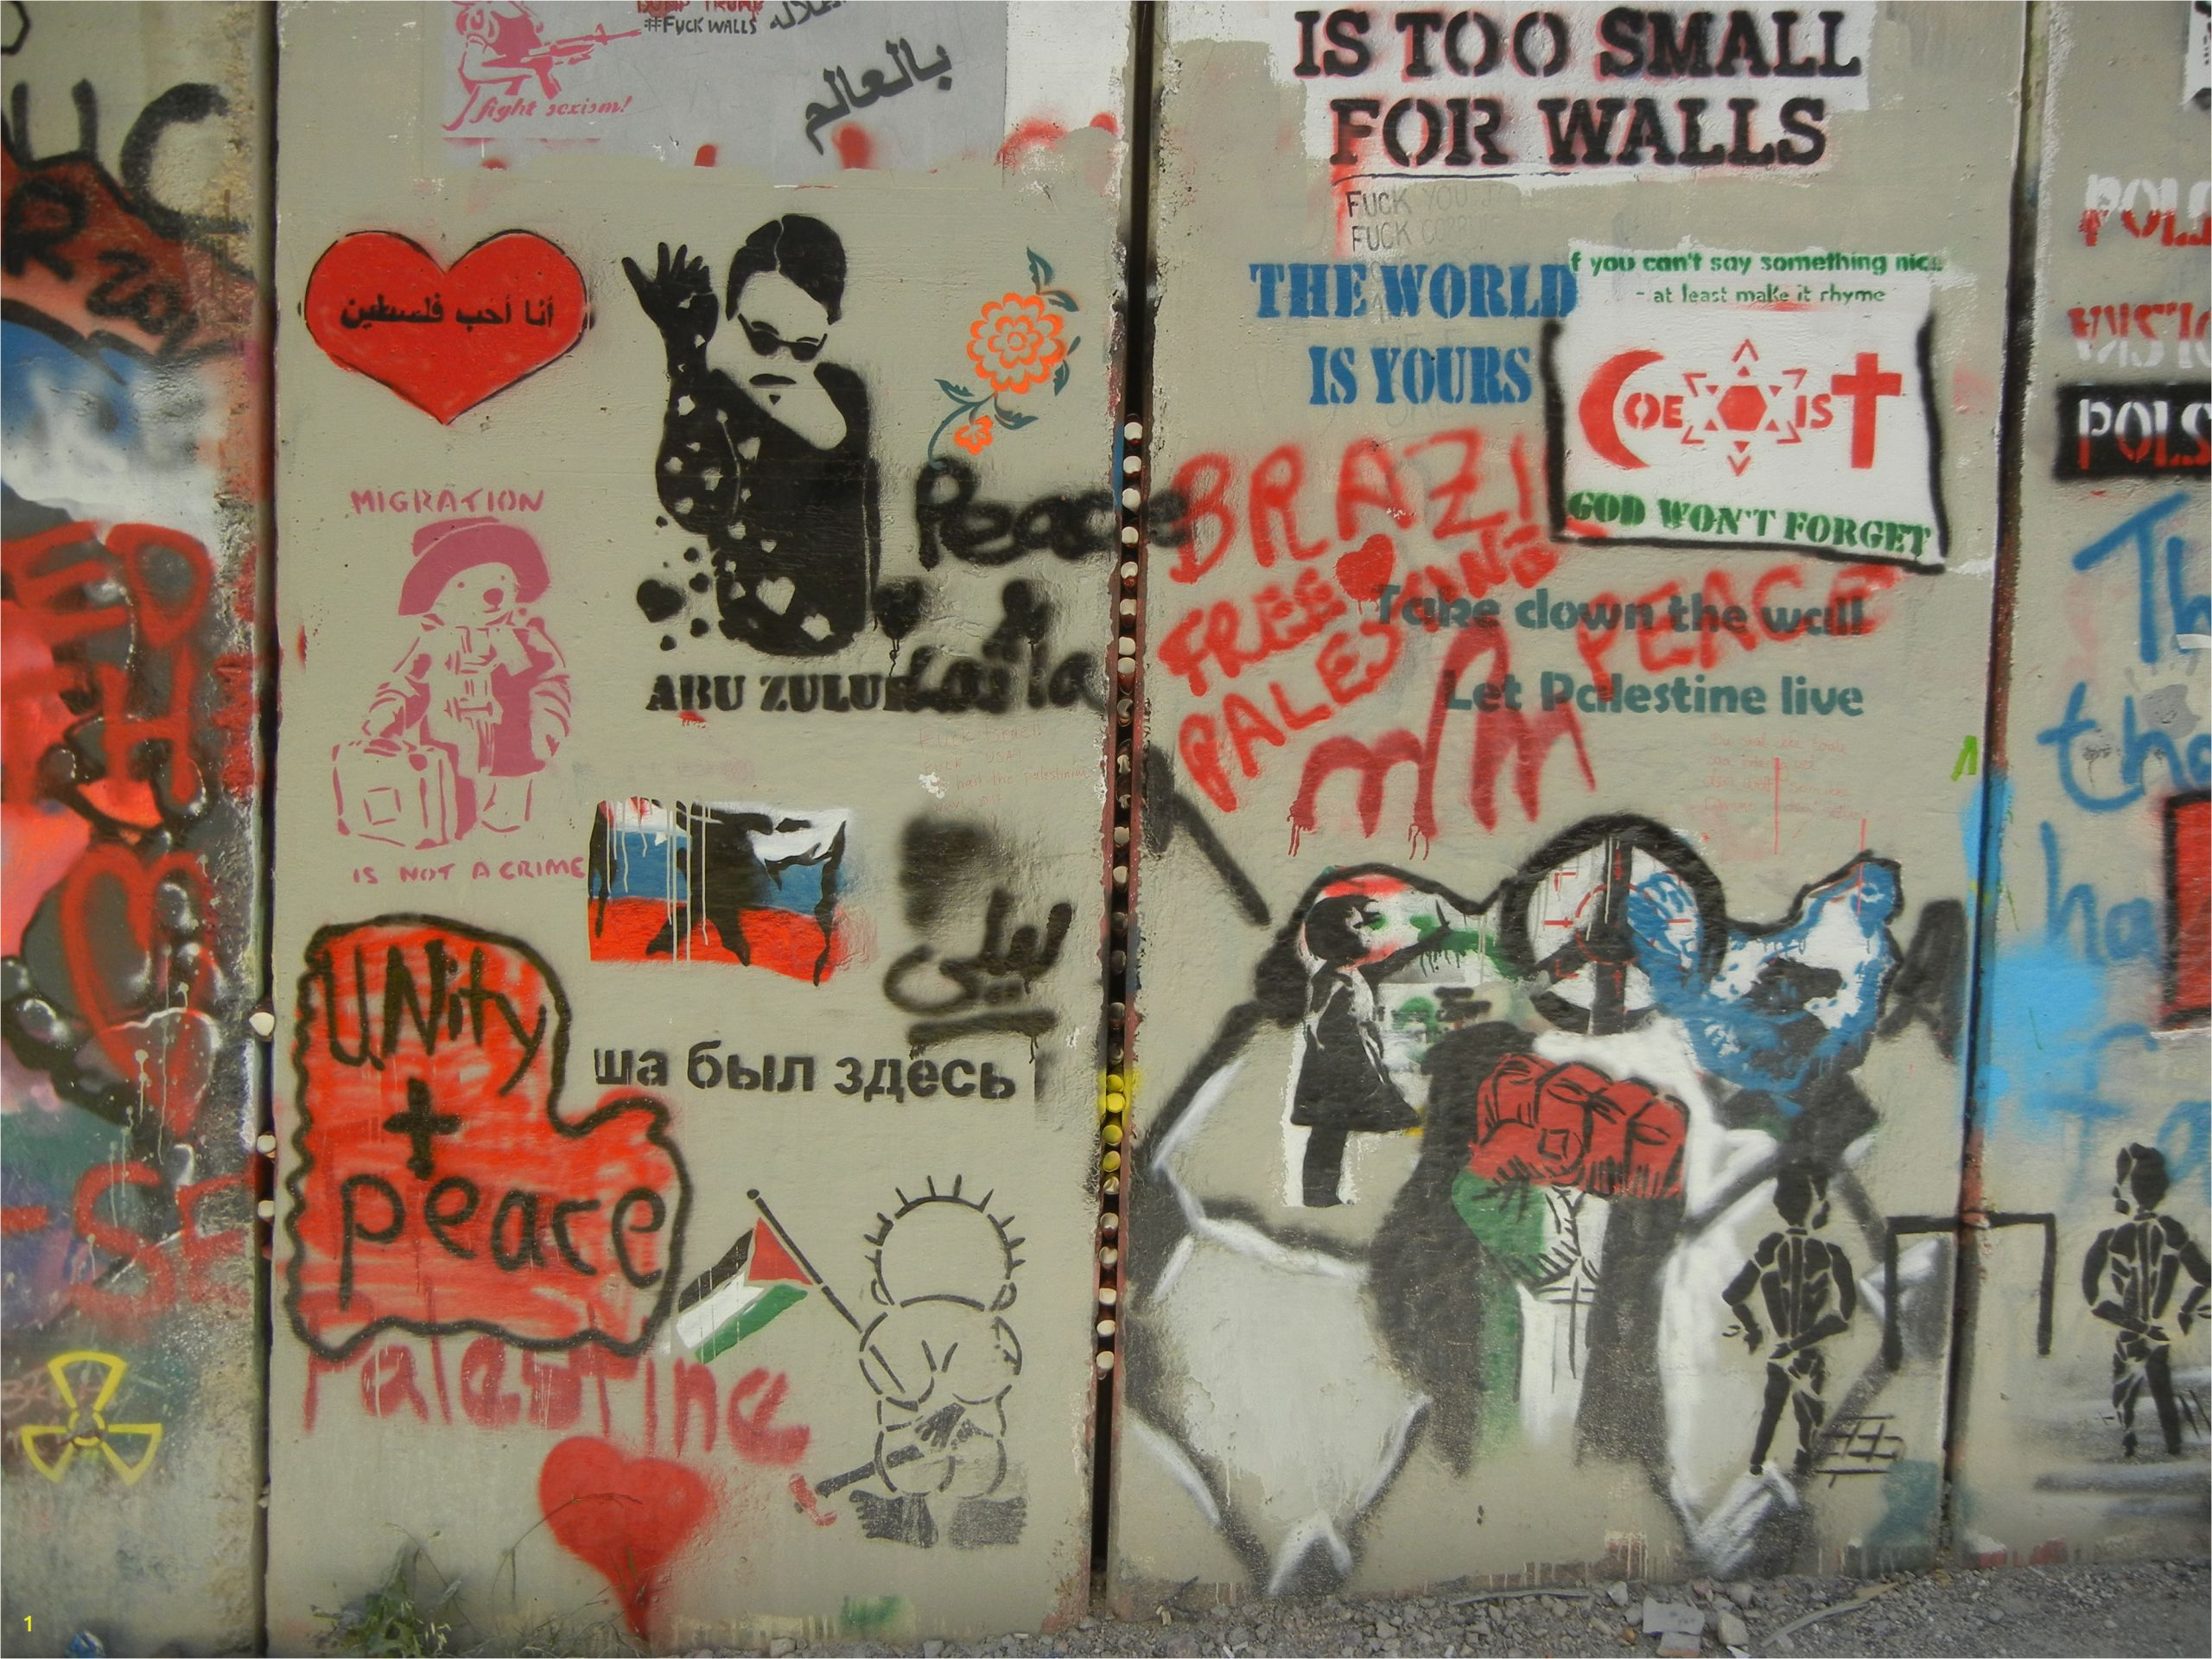 The segregation wall in front of the walled off hotel 1